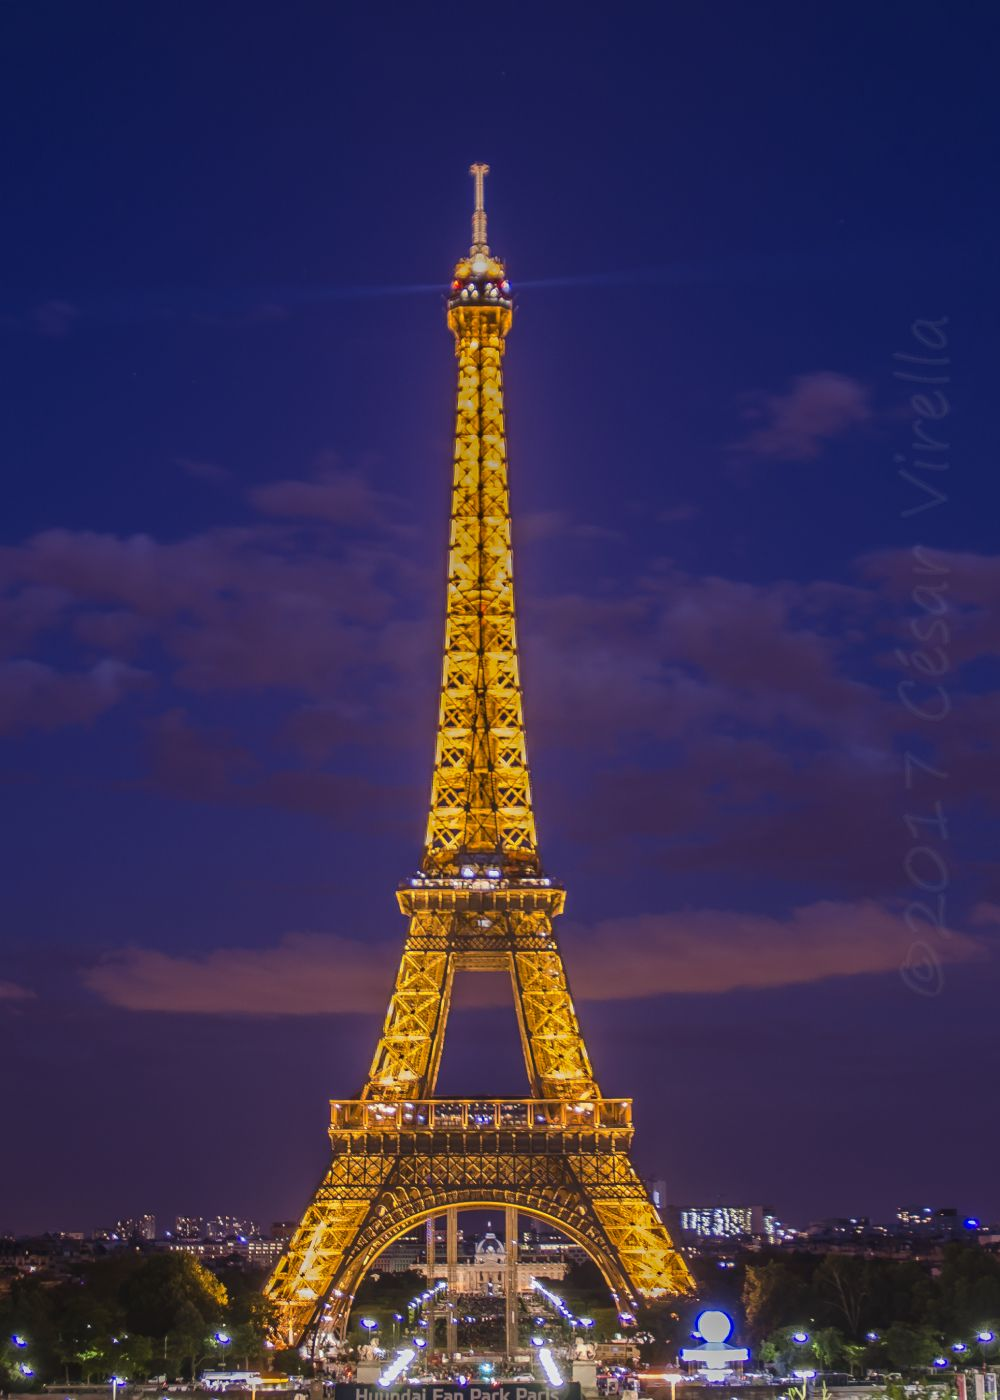 Eiffel Tower from Trocadero, France